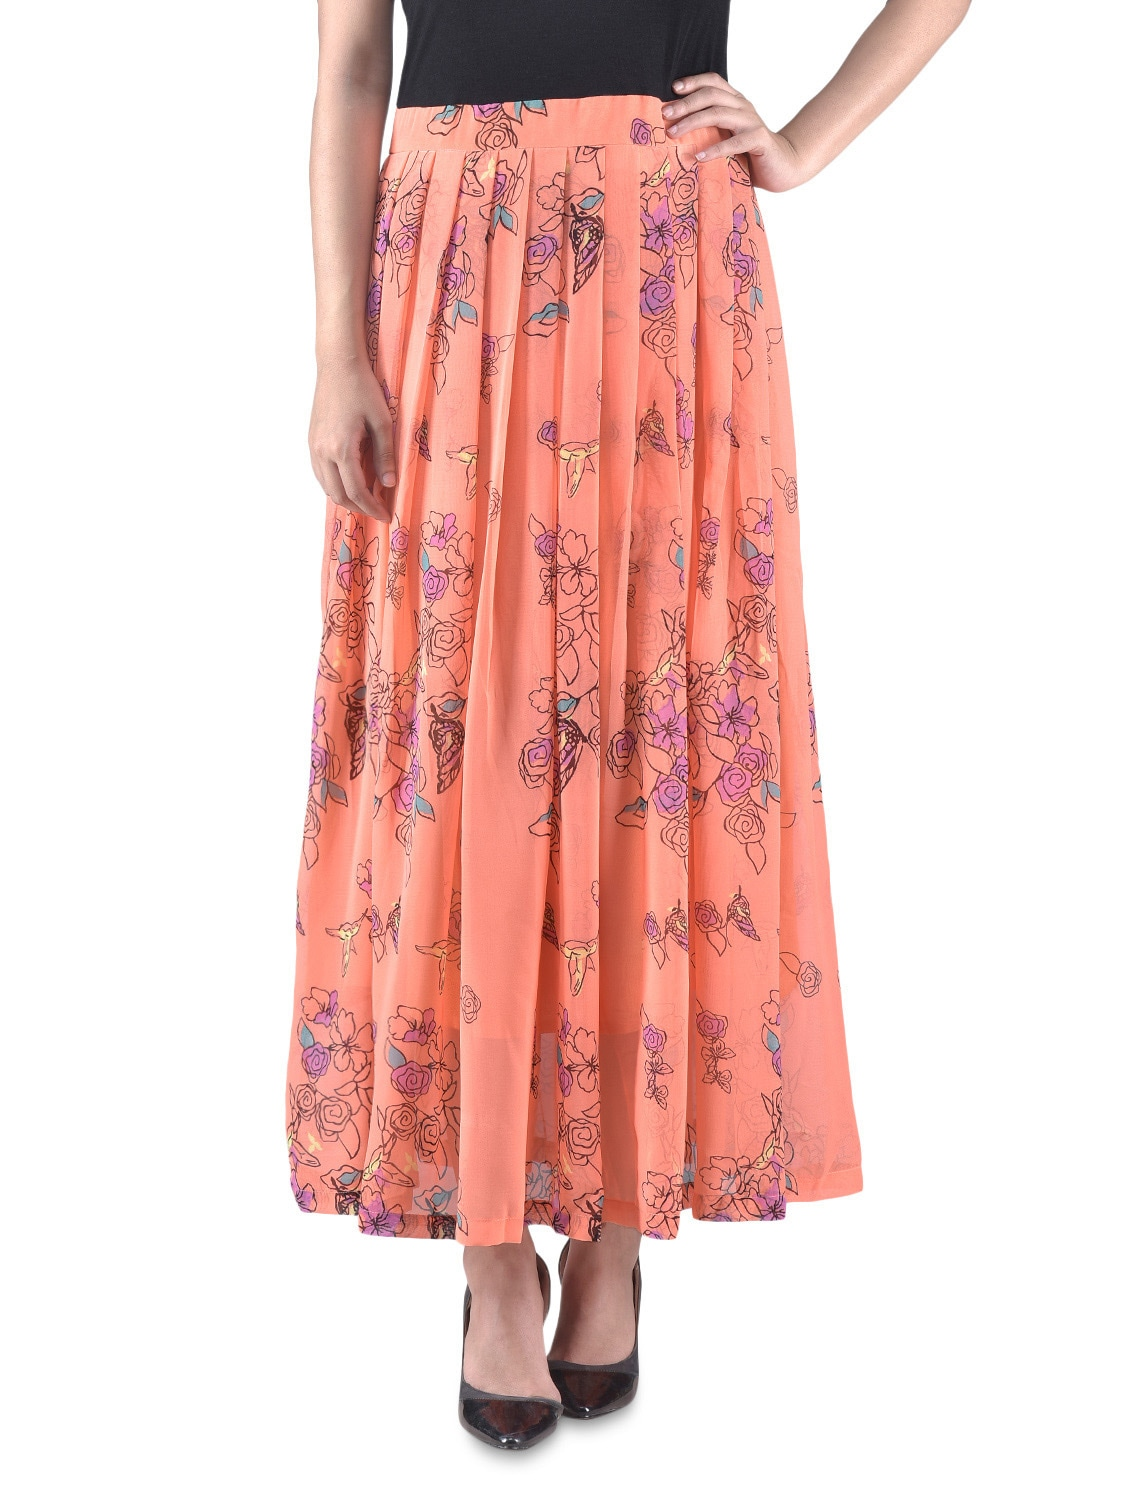 Black And Peach Printed Maxi Dress - By